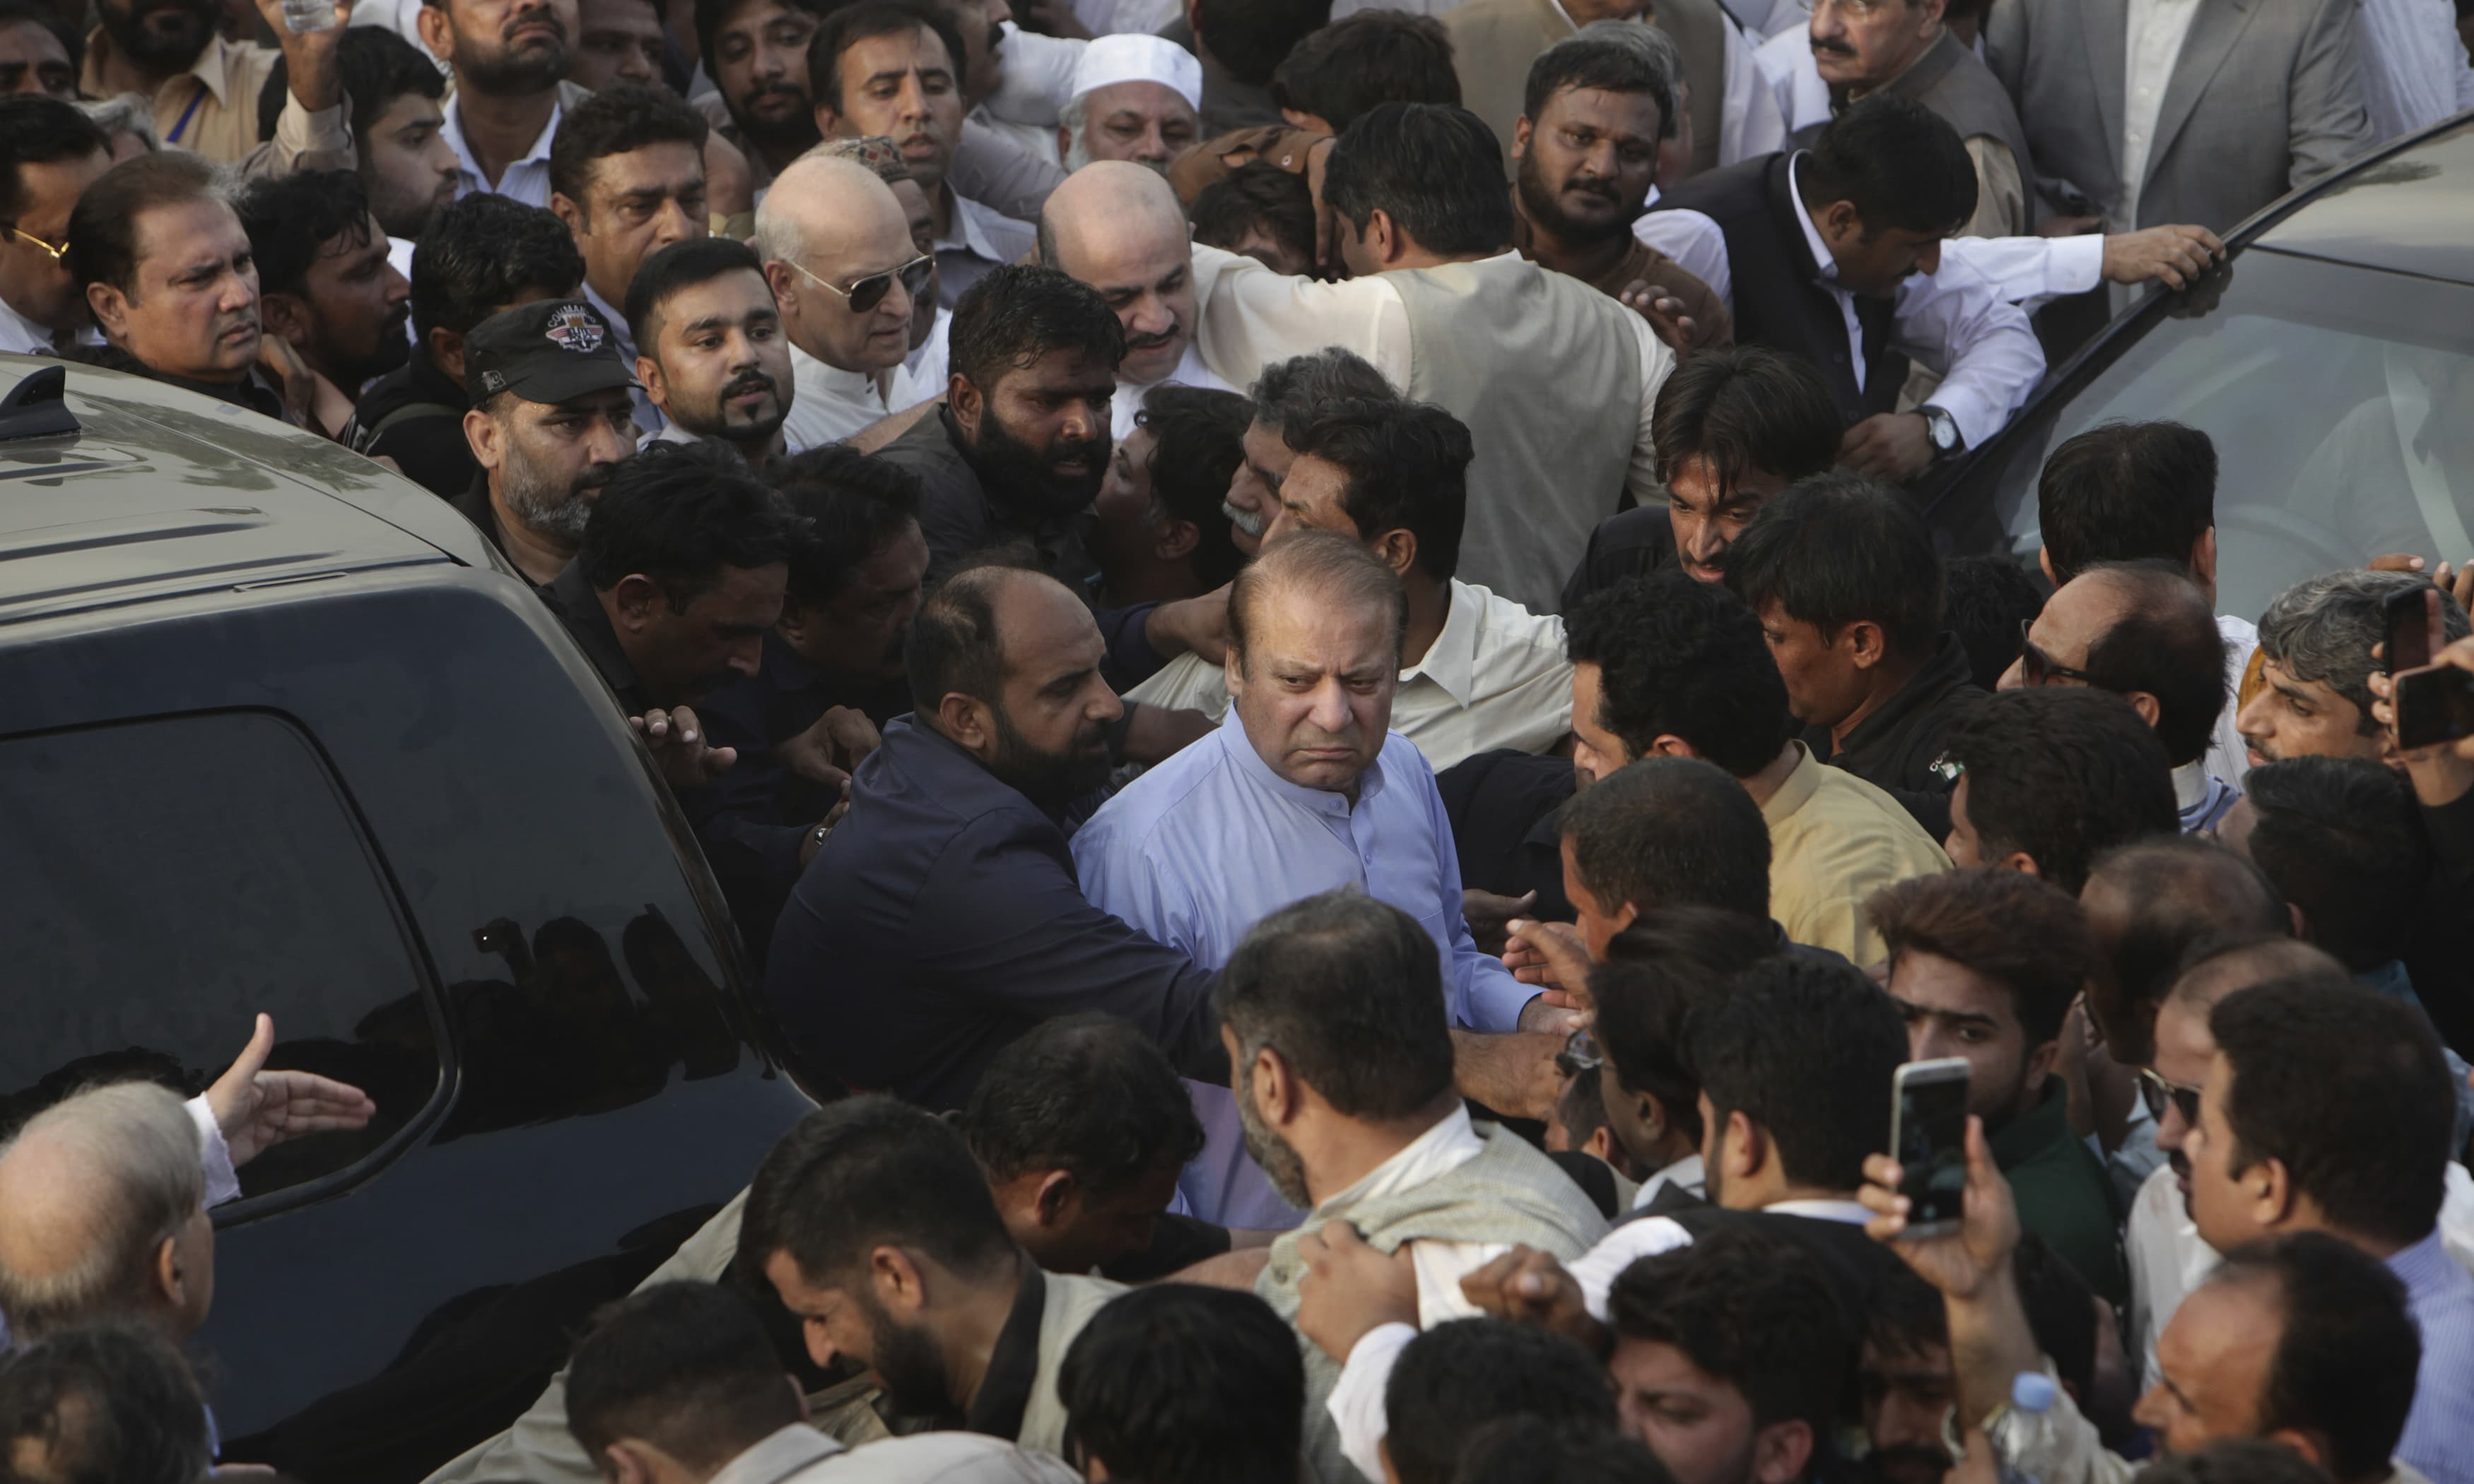 Jailed former prime minister Nawaz Sharif arrives to attend the funeral of his wife Kulsoom Nawaz in Lahore. —AP